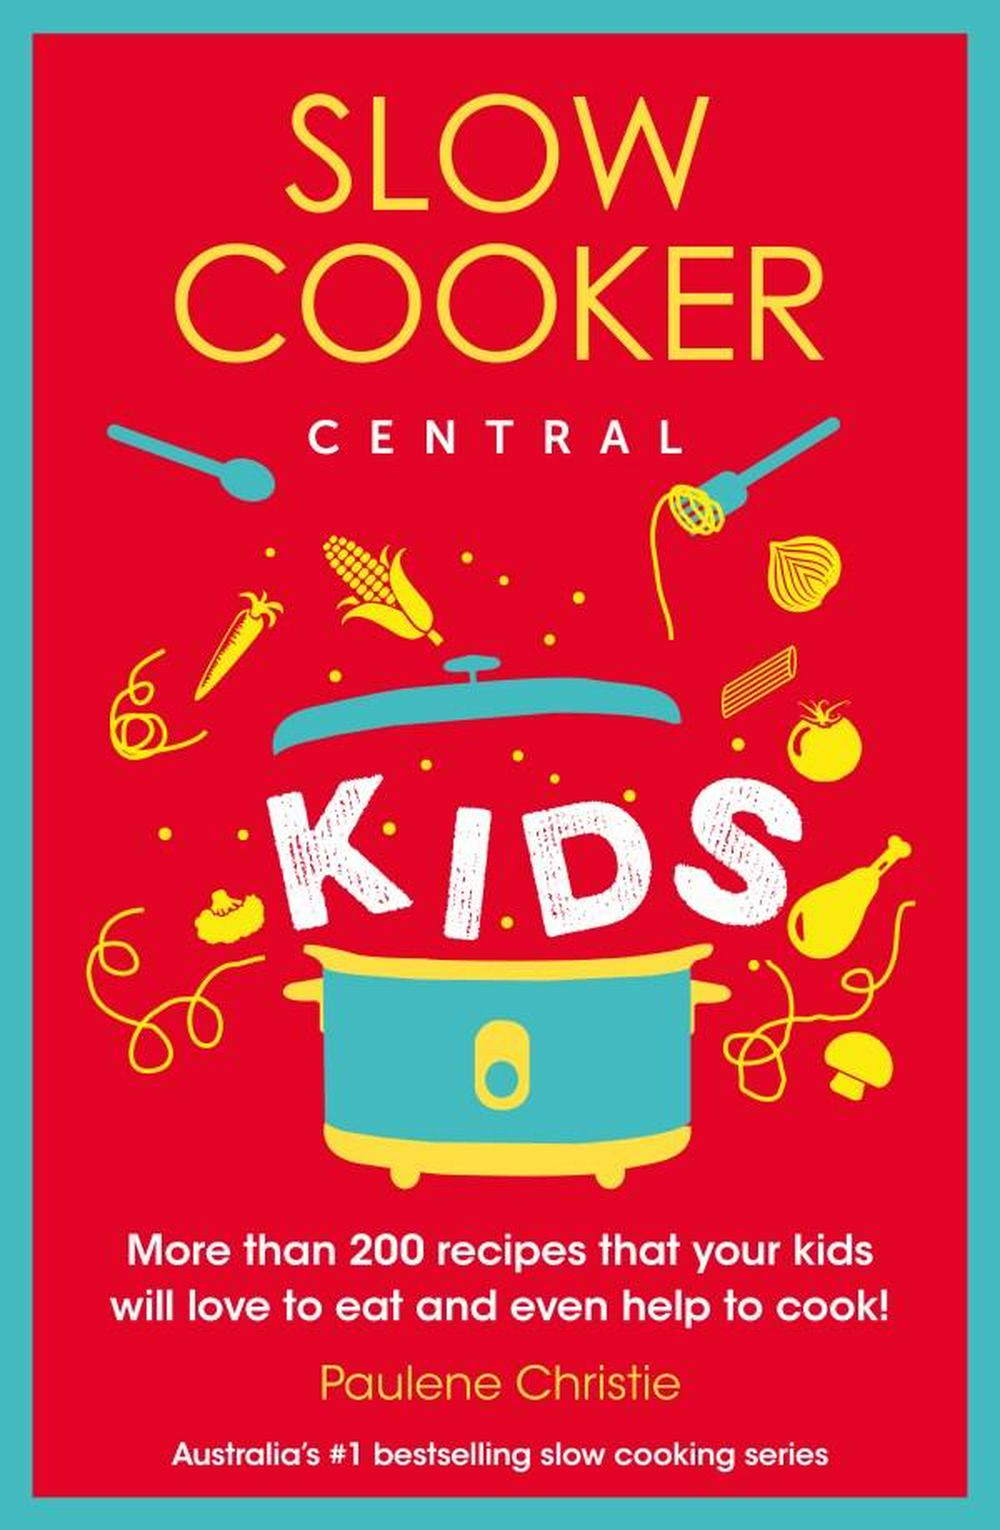 Slow Cooker Central KidsSlow Cooker Central by Paulene Christie, ISBN: 9780733339226